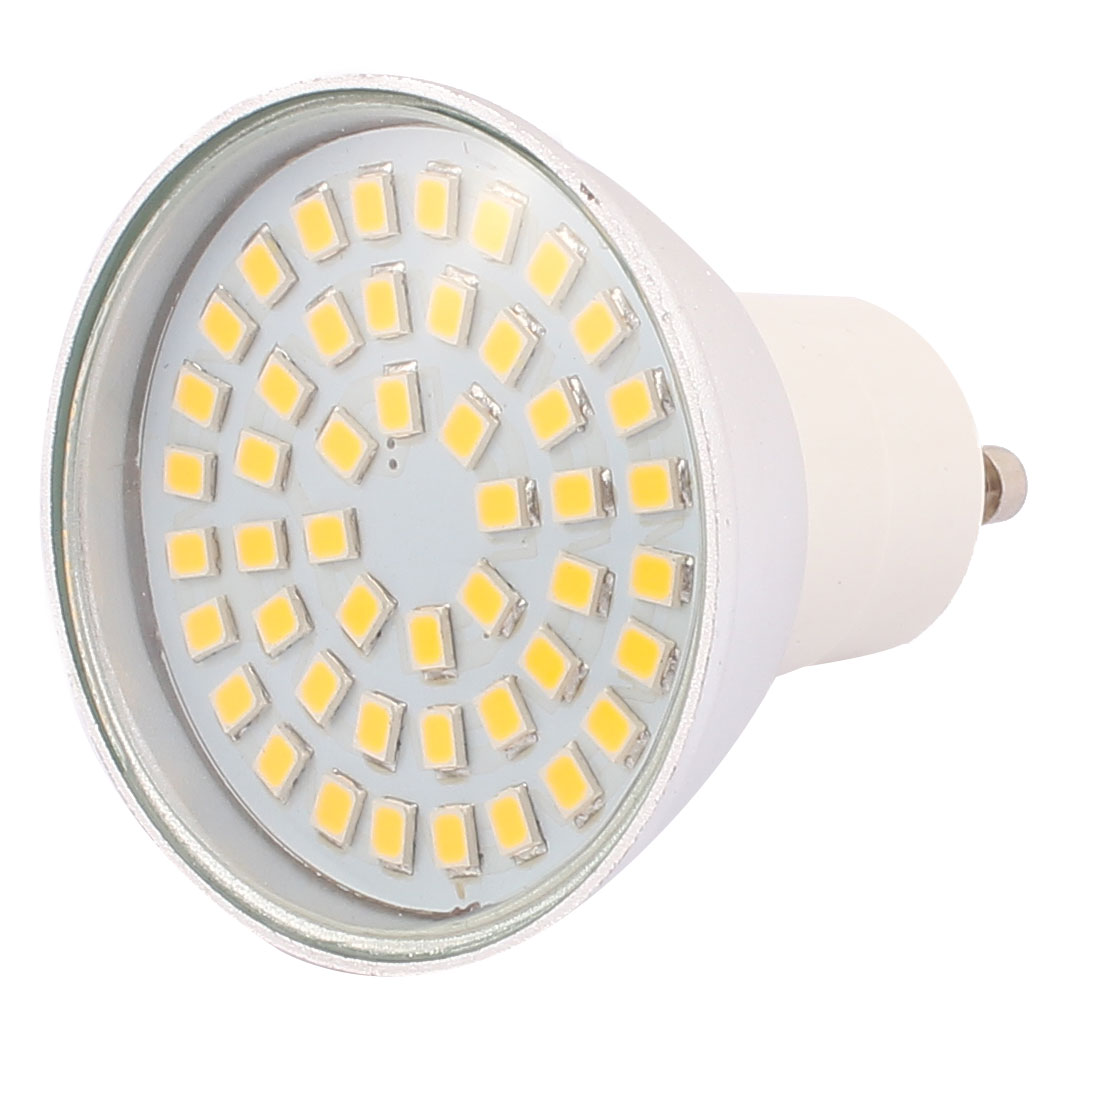 110V GU10 LED Light 4W 2835 SMD 48 LEDs Spotlight Down Lamp Energy Saving Warm White